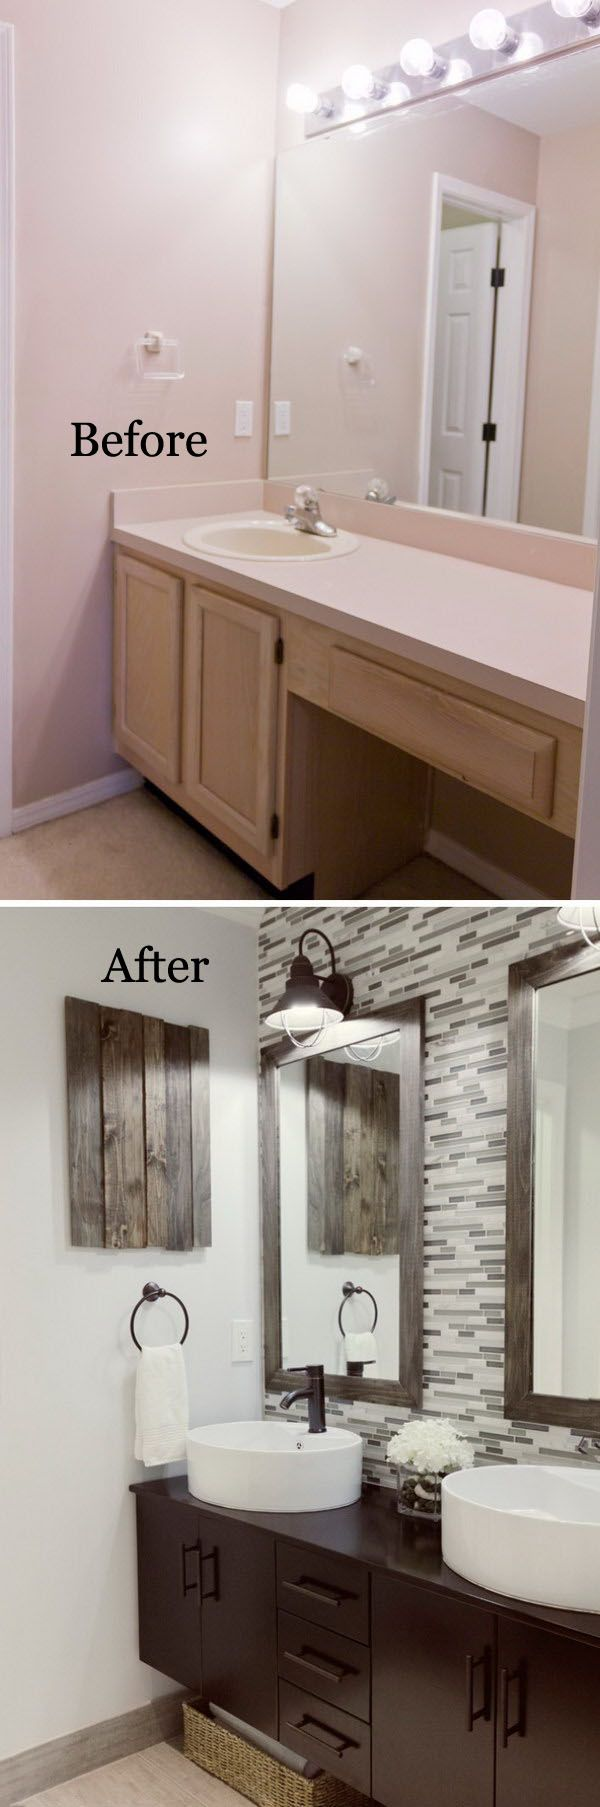 Best Budget Friendly Bathroom Makeover Ideas And Designs For - Budget friendly bathroom remodels